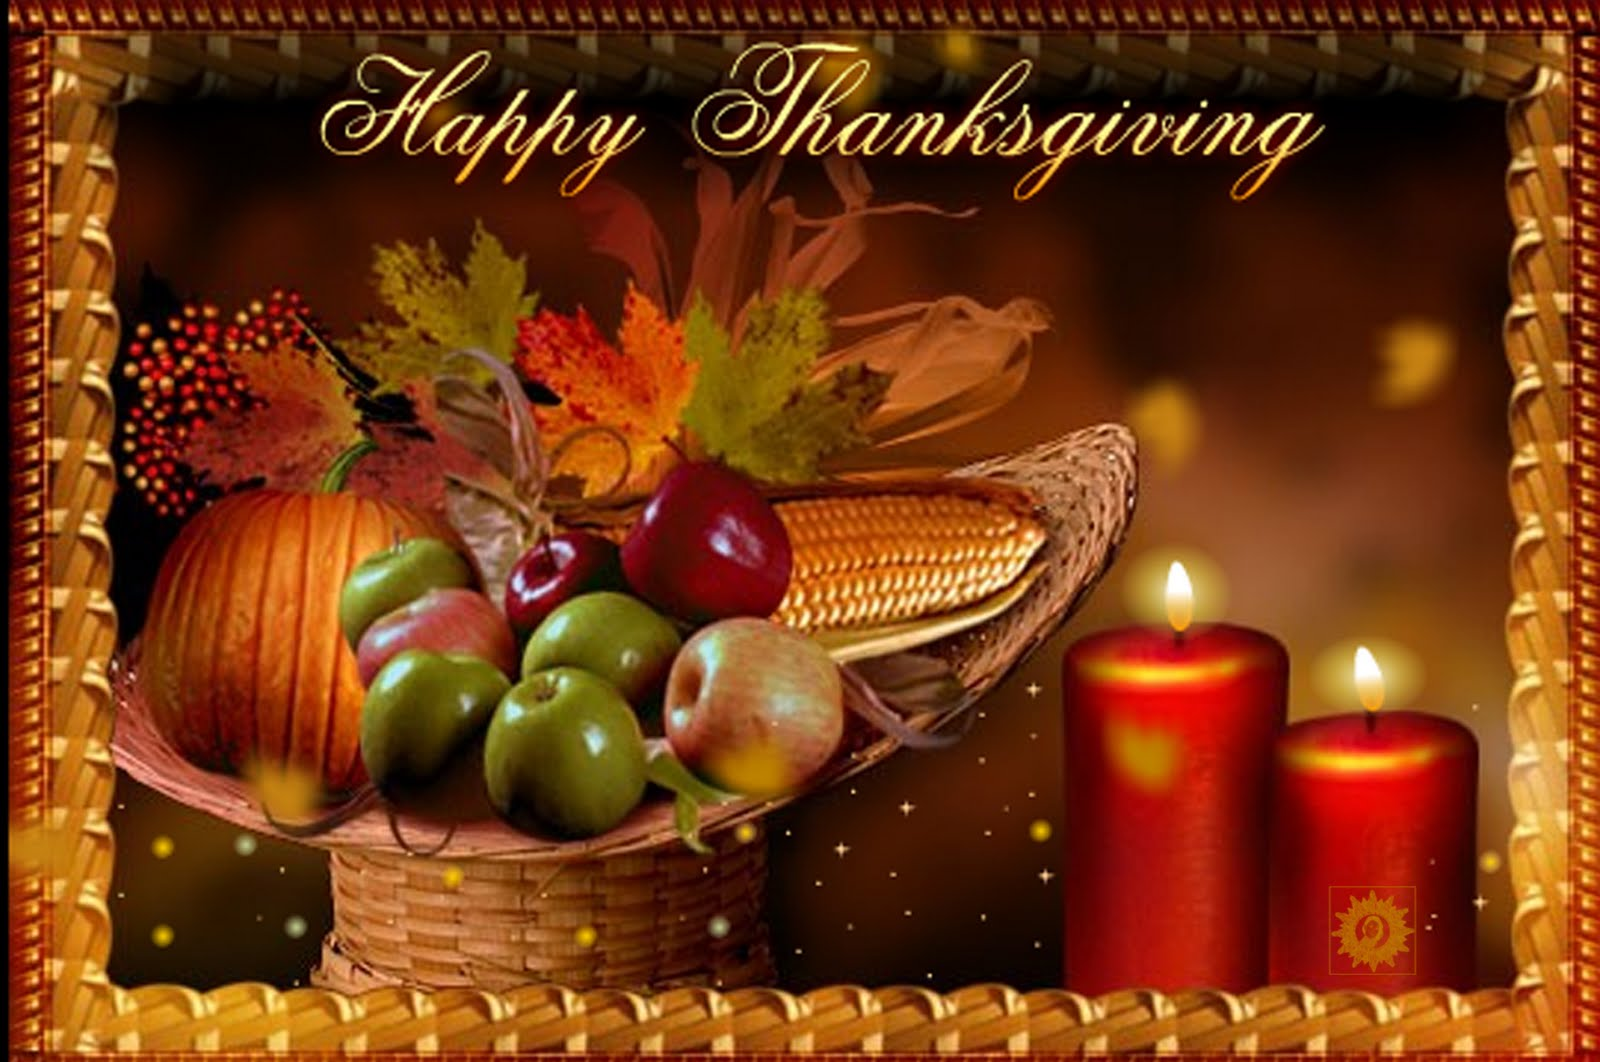 Christian Thanksgiving Backgrounds Images Pictures   Becuo 1600x1062